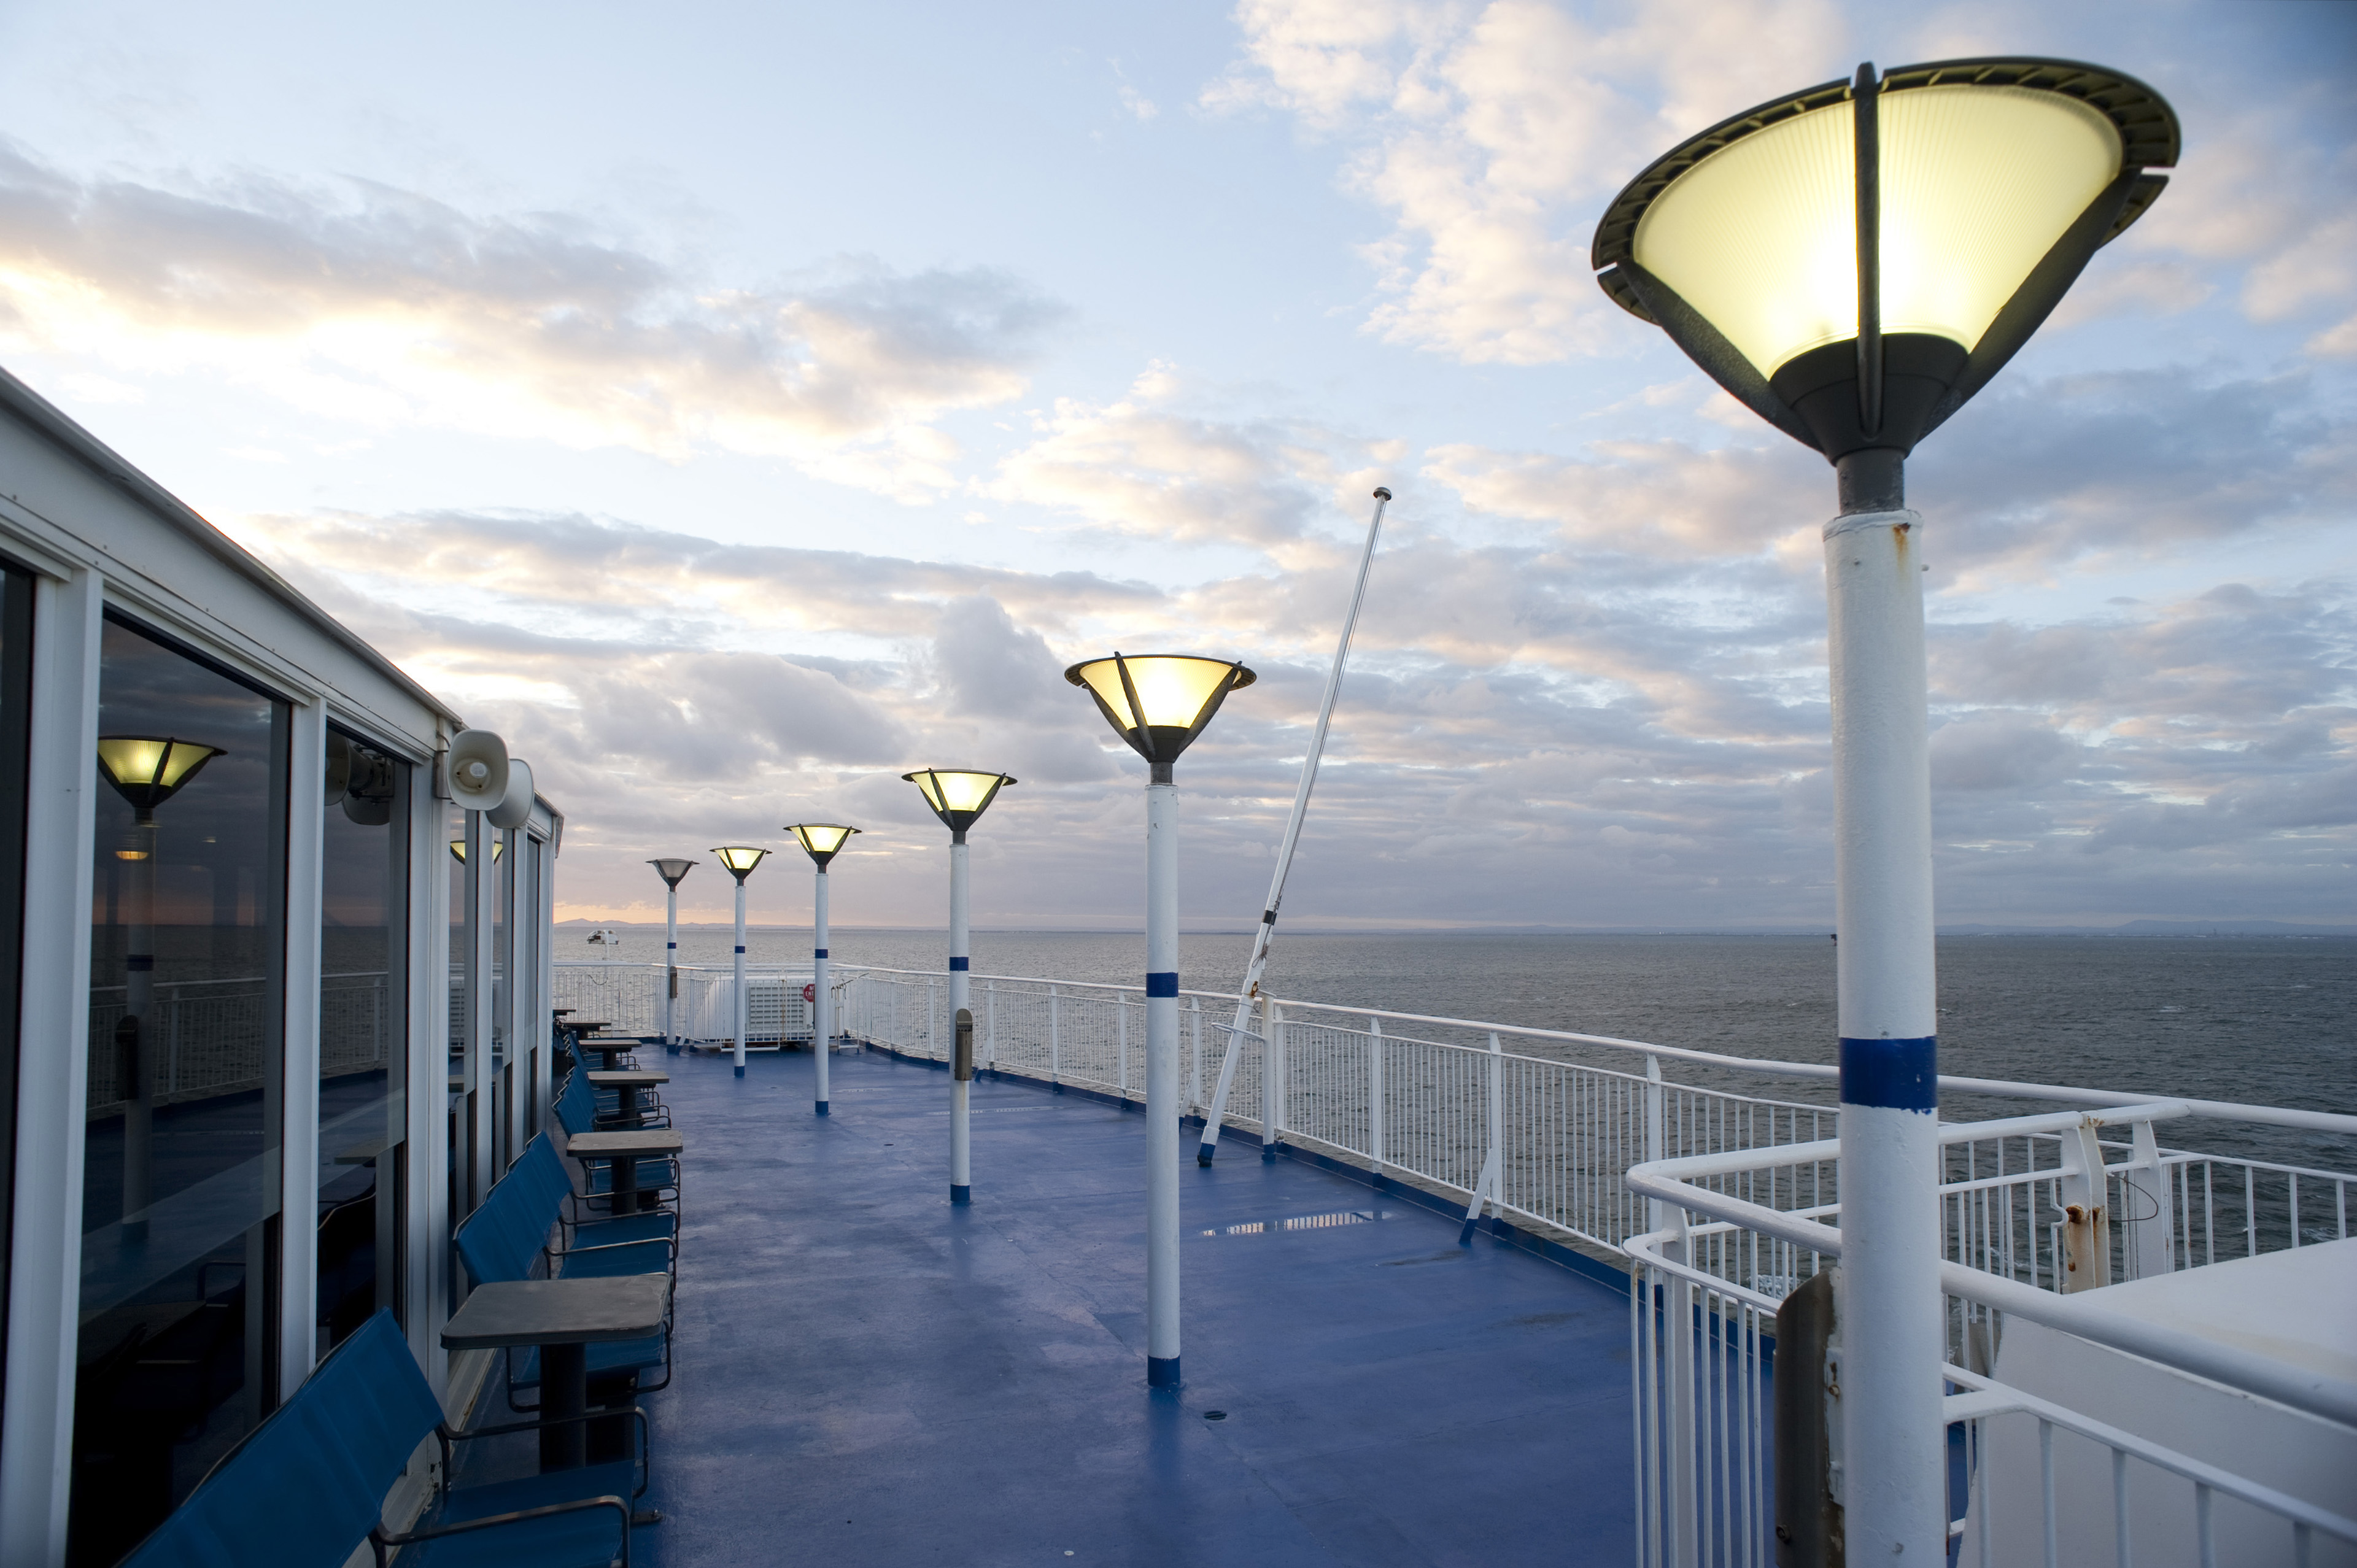 Deserted deck of a ferry in the evening with glowing lamps cruising mid ocean